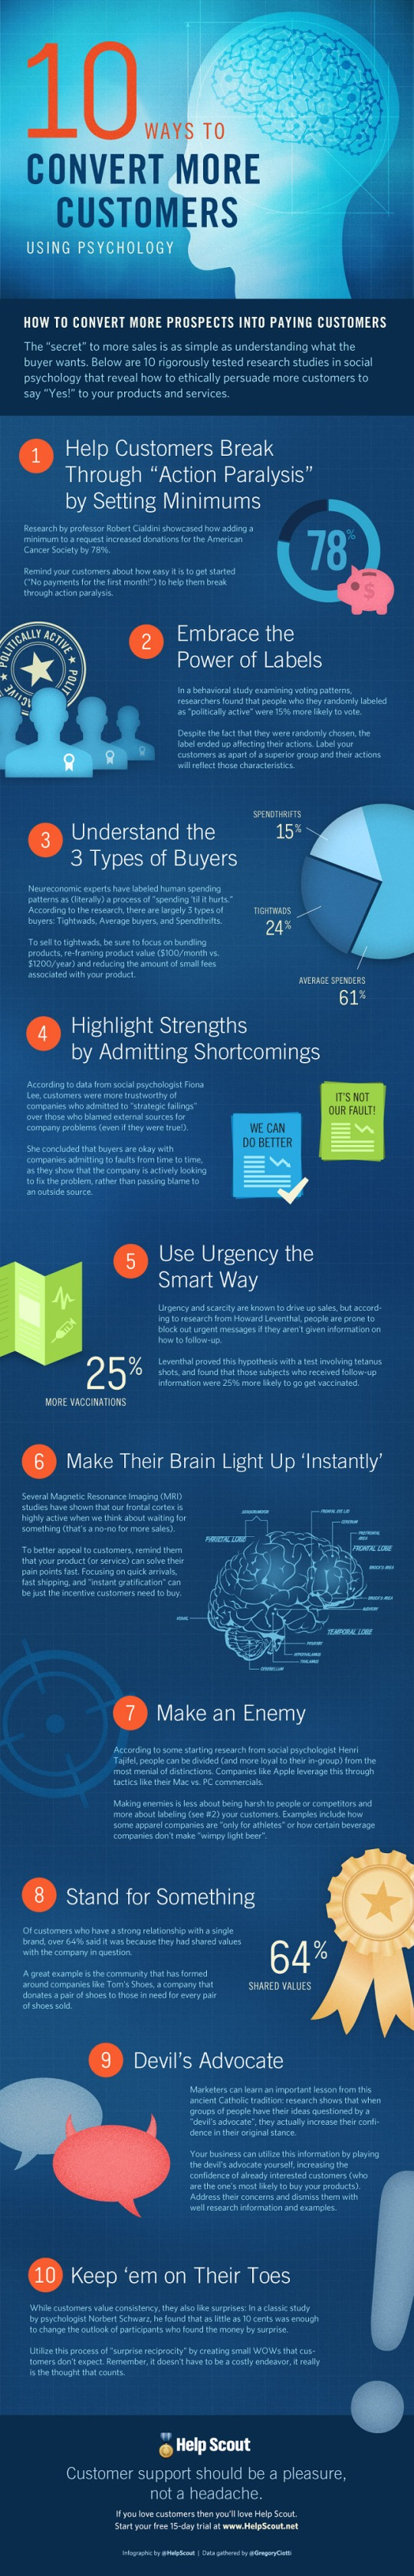 10-ways-convert-more-customers-psychology-infographic